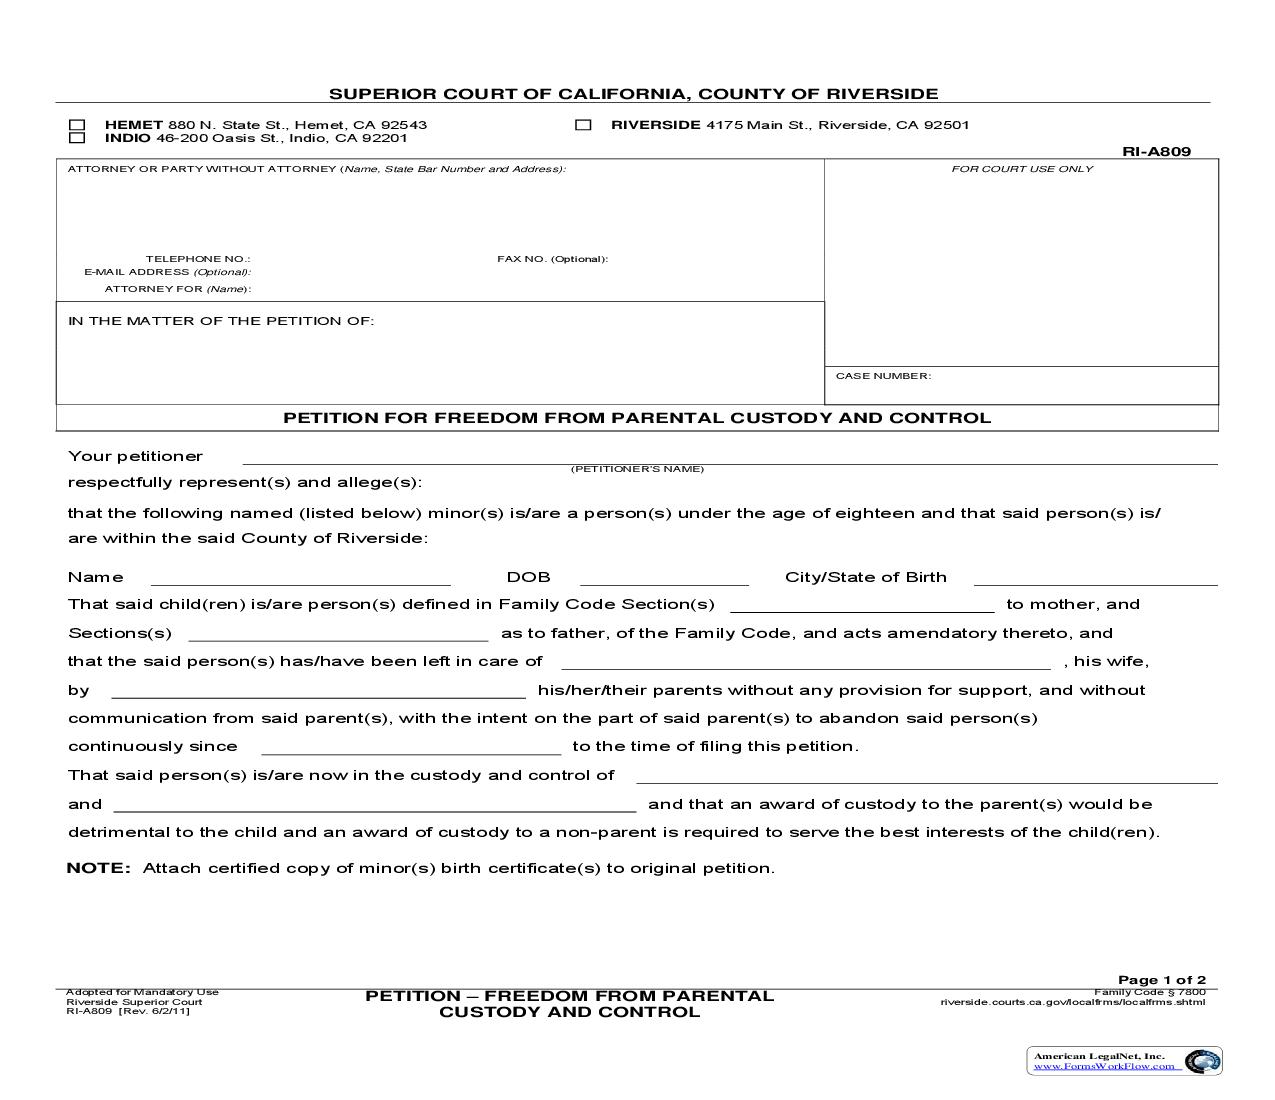 Petition For Freedom From Parental Custody And Control {RI-A809}   Pdf Fpdf Doc Docx   California